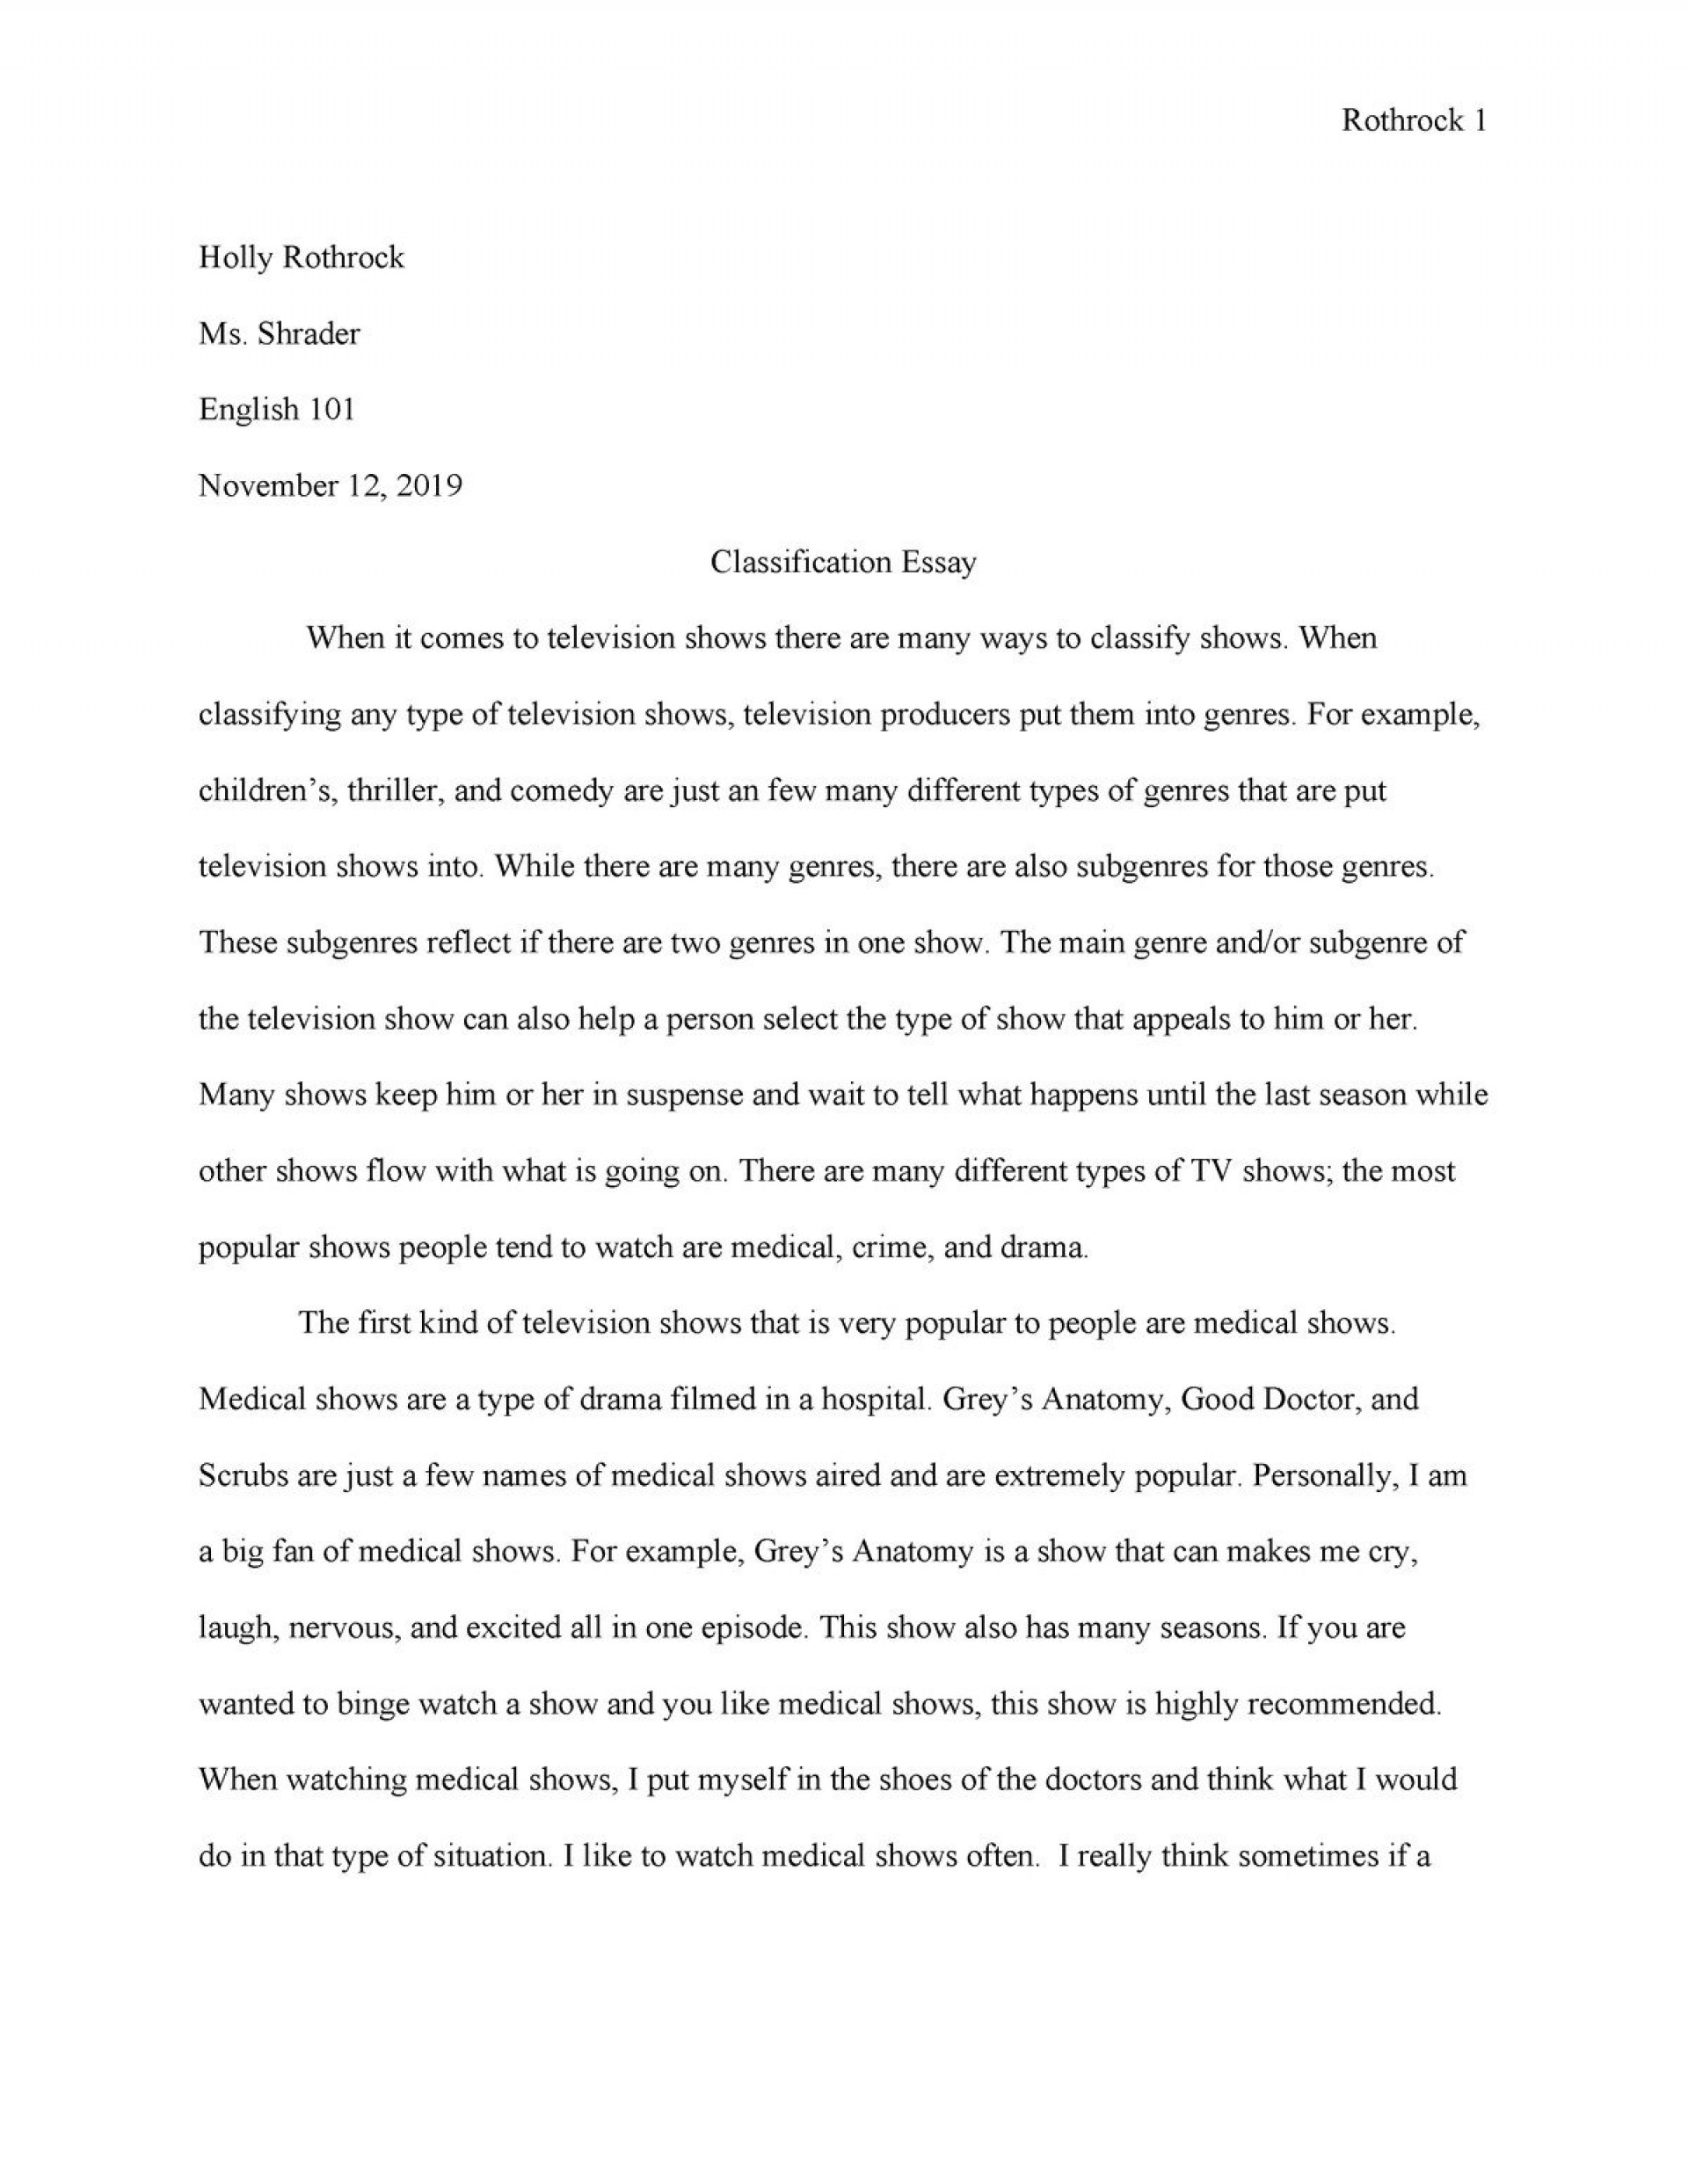 007 Awful Classification Essay Idea  About Type Of Food Topic Example1920